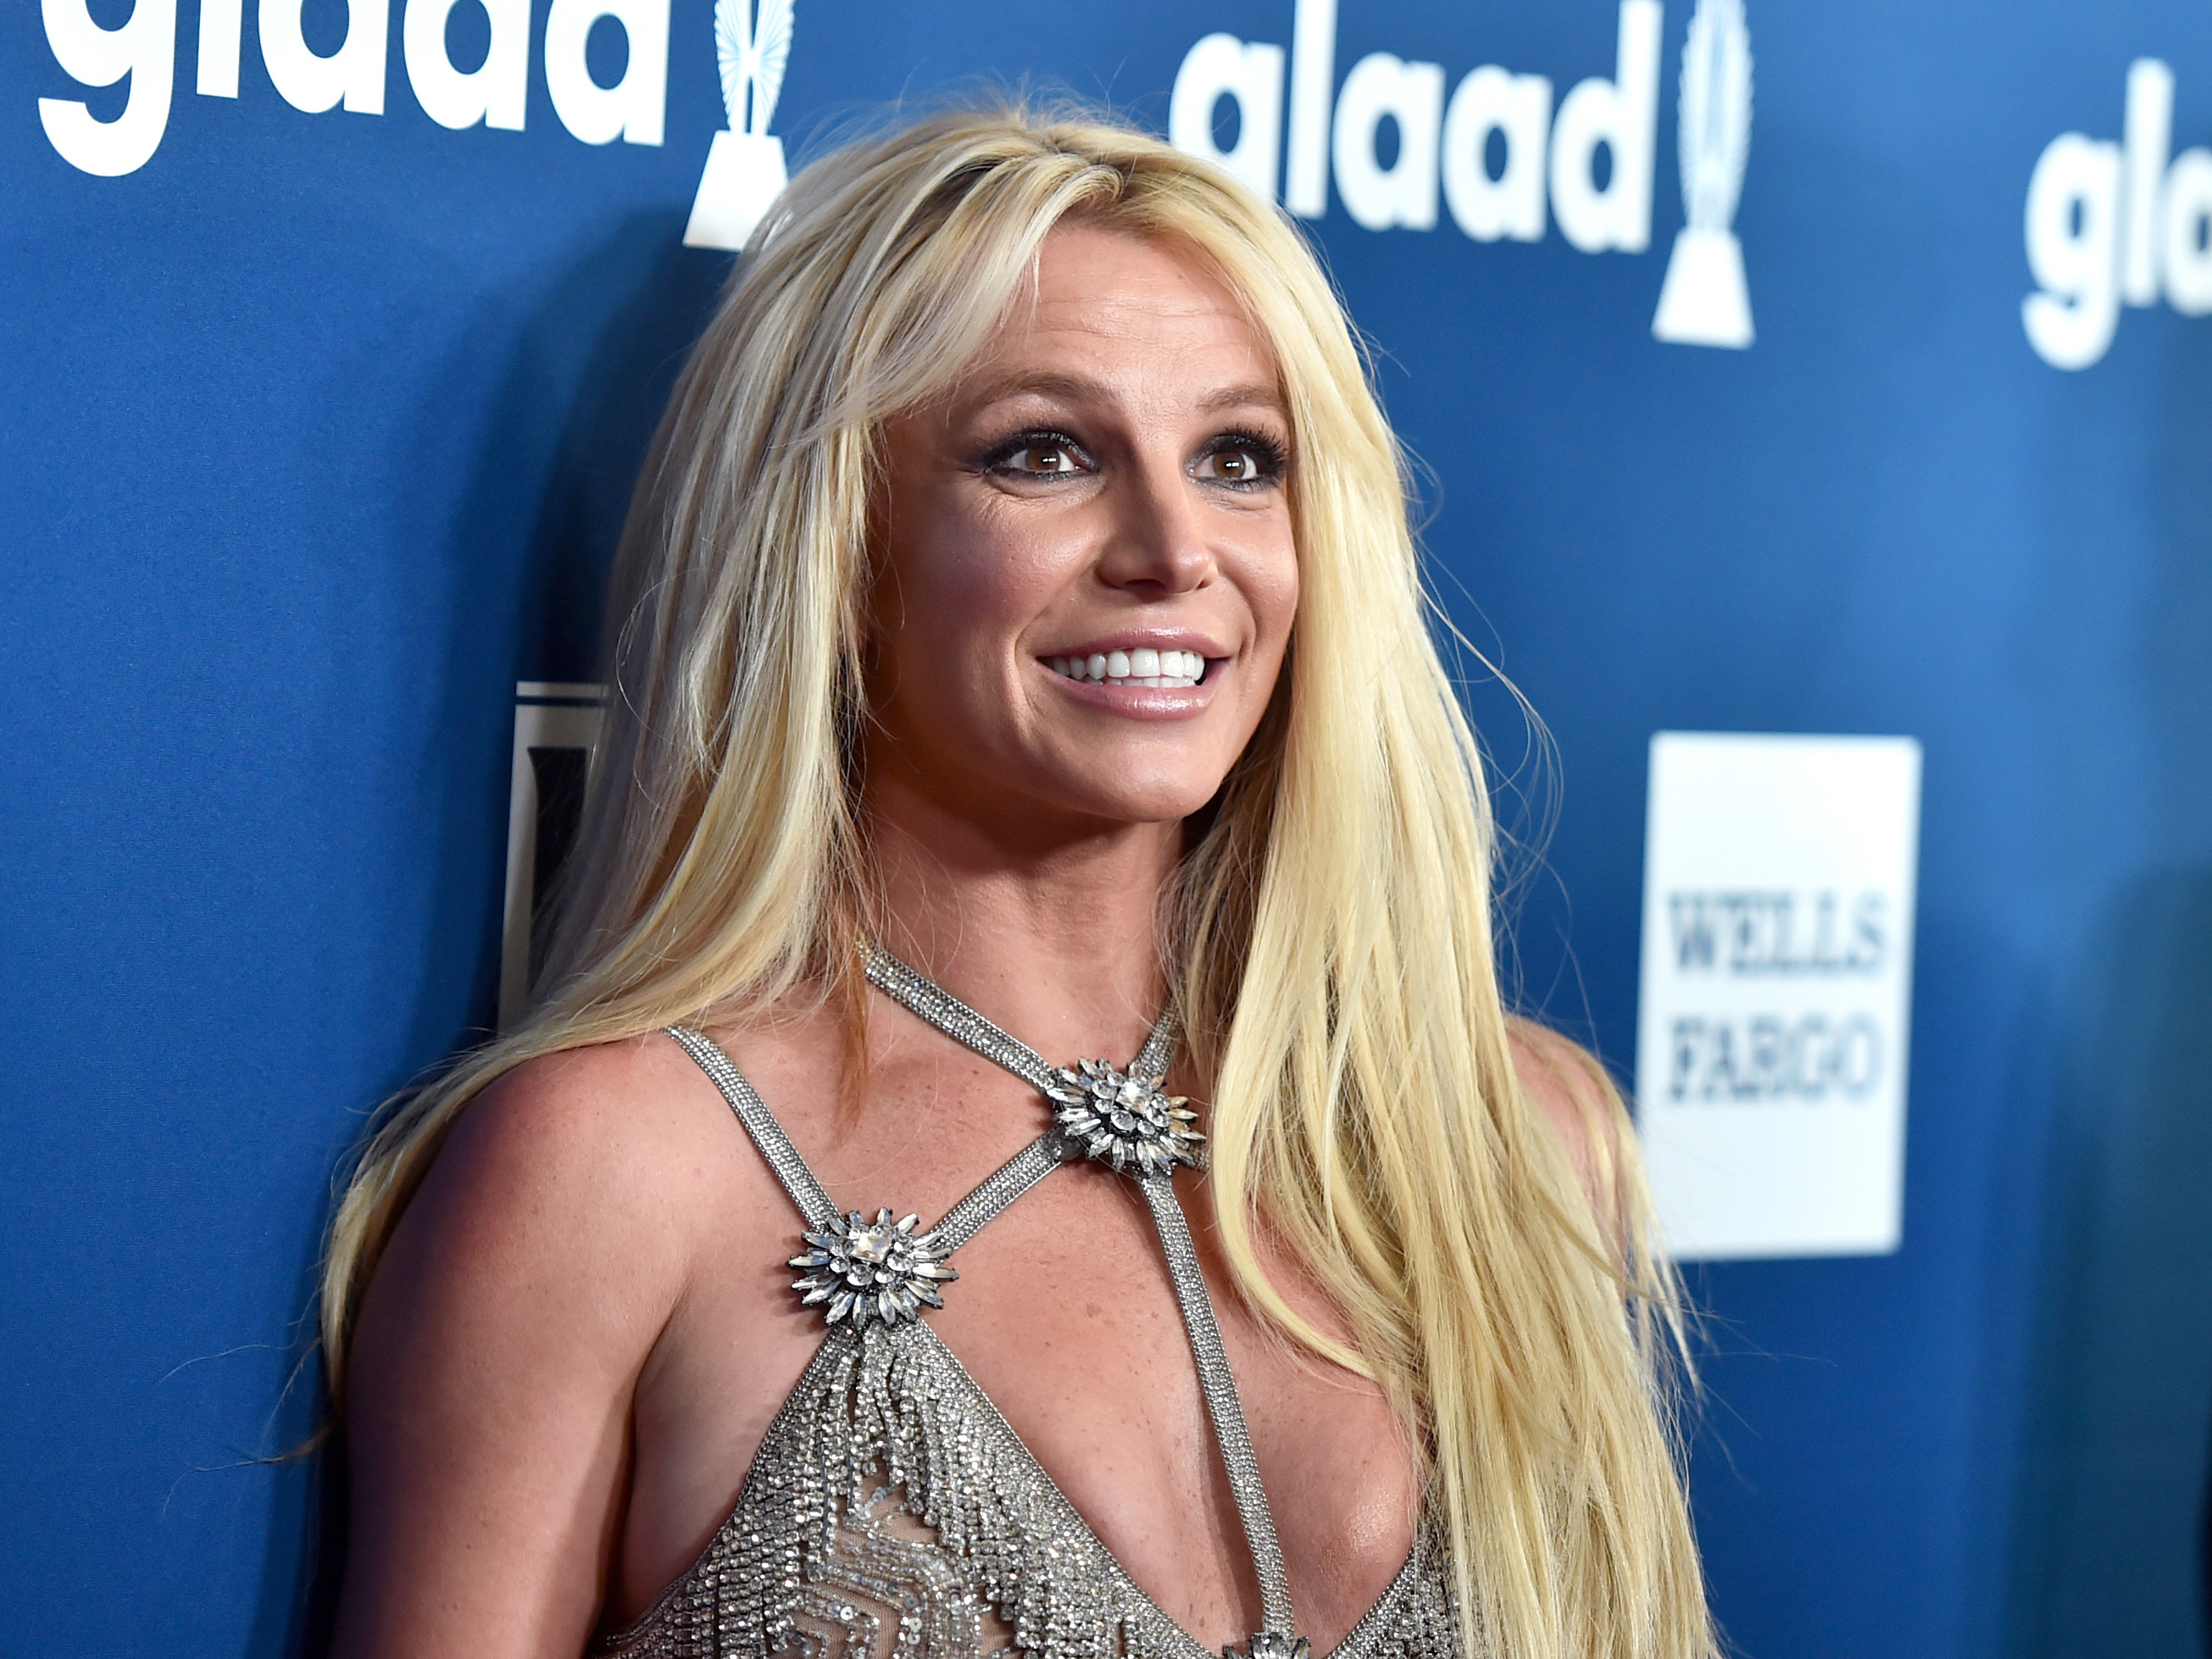 A Republican And Democrat Have Come Together To #FreeBritney